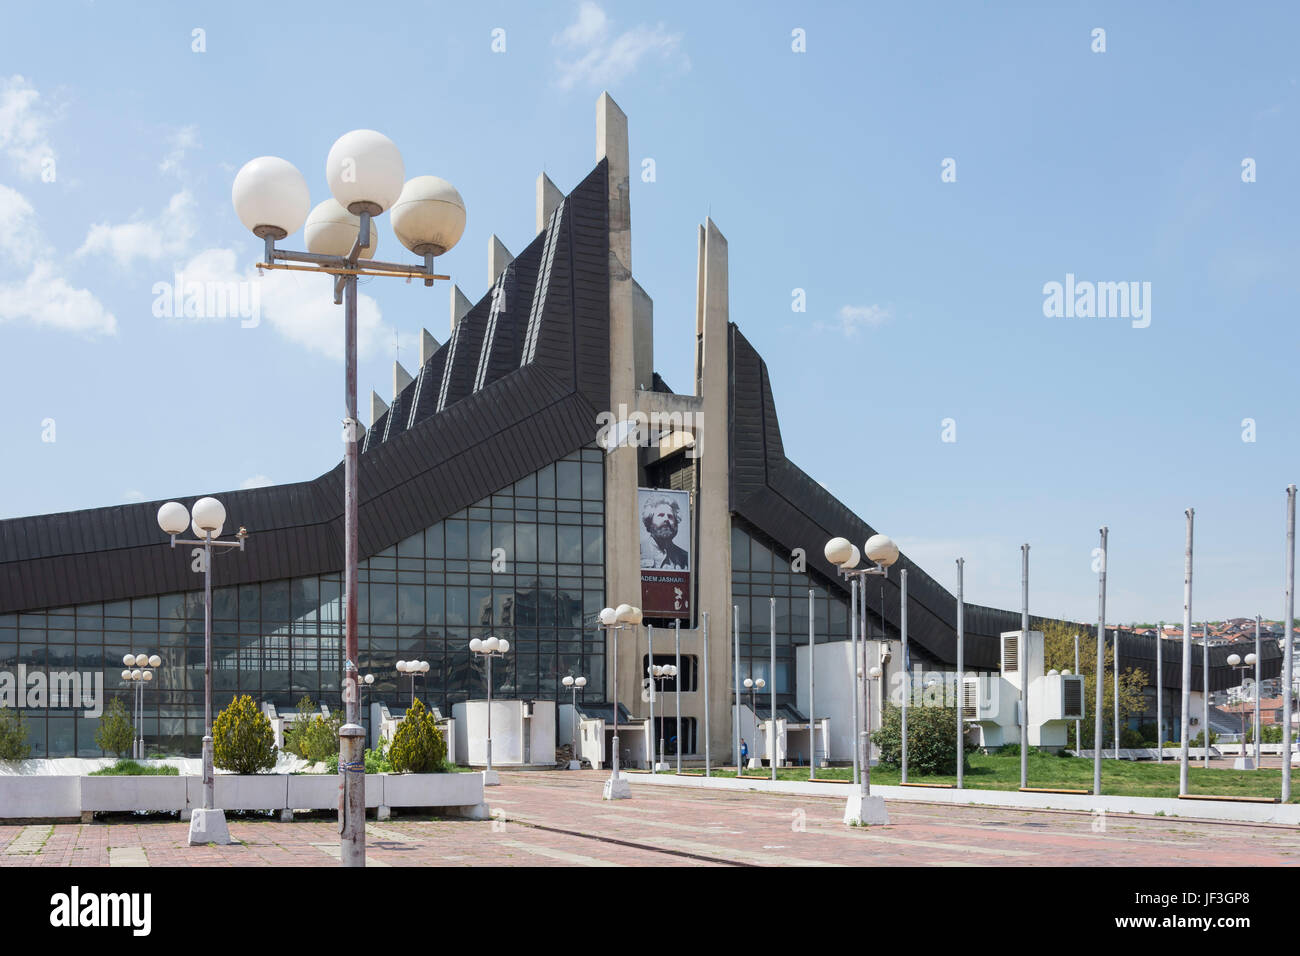 Palace of Youth and Sports, Pristina (Prishtina), Republic of Kosovo - Stock Image